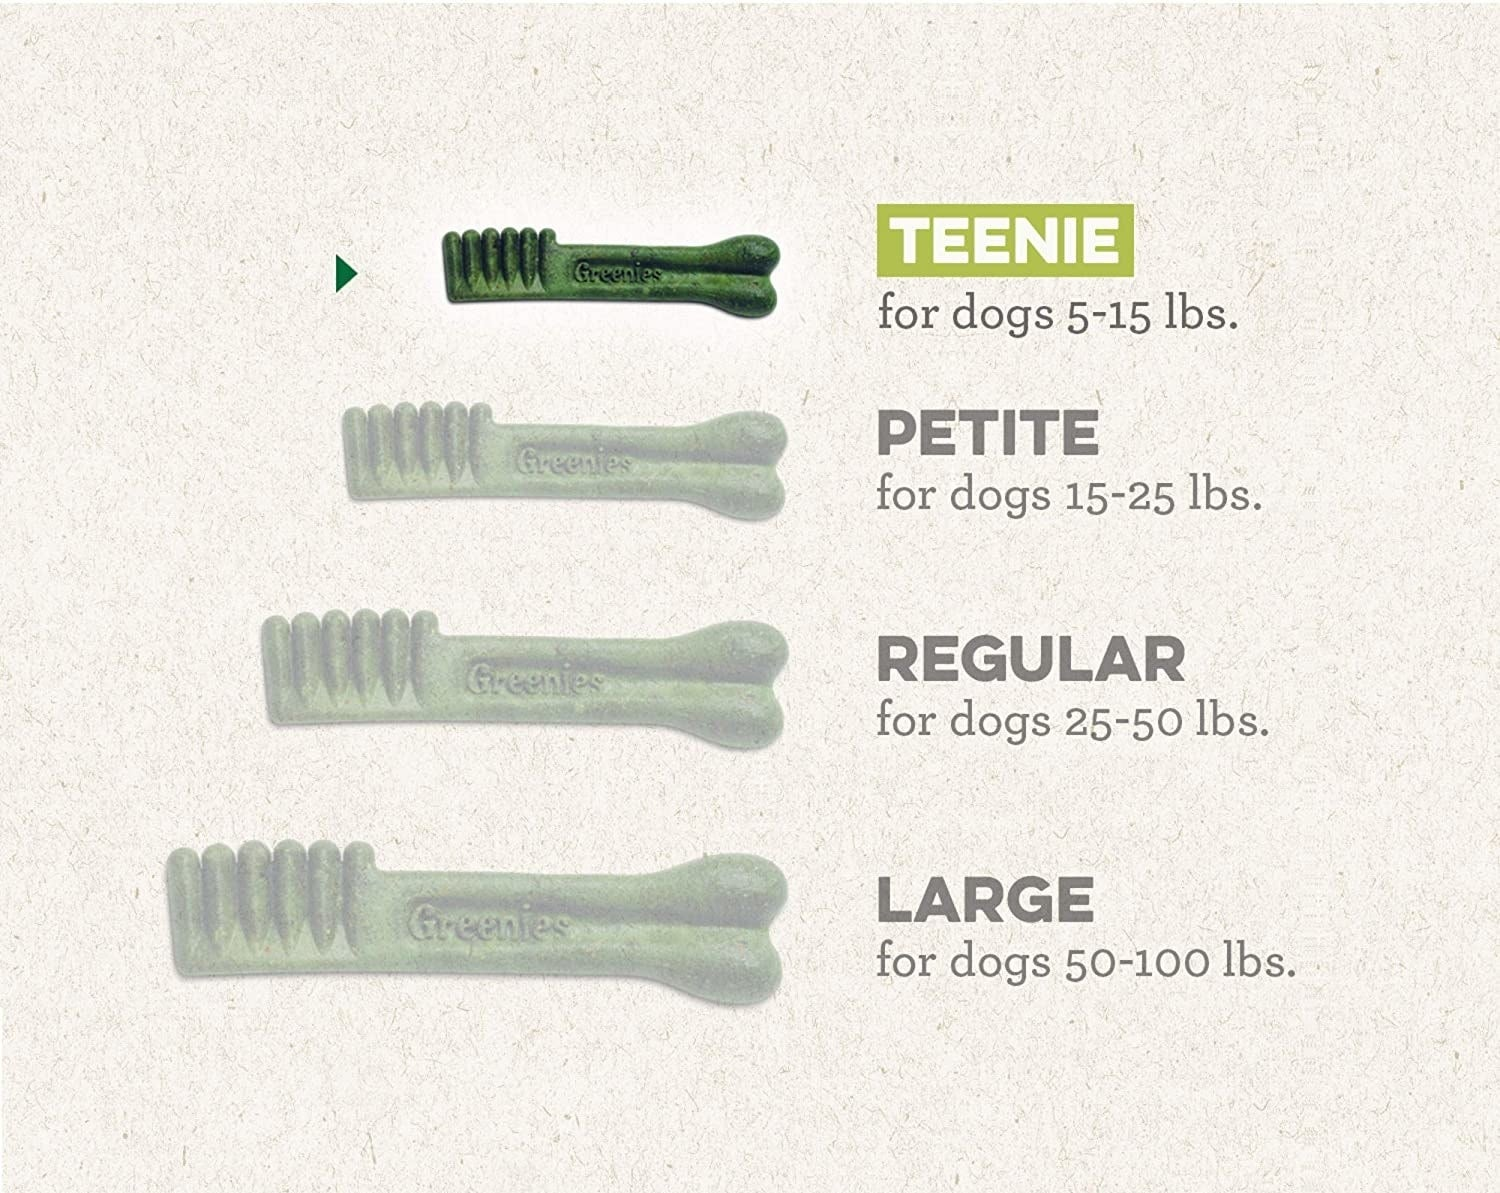 The teenie treat in comparison to the larger treat options